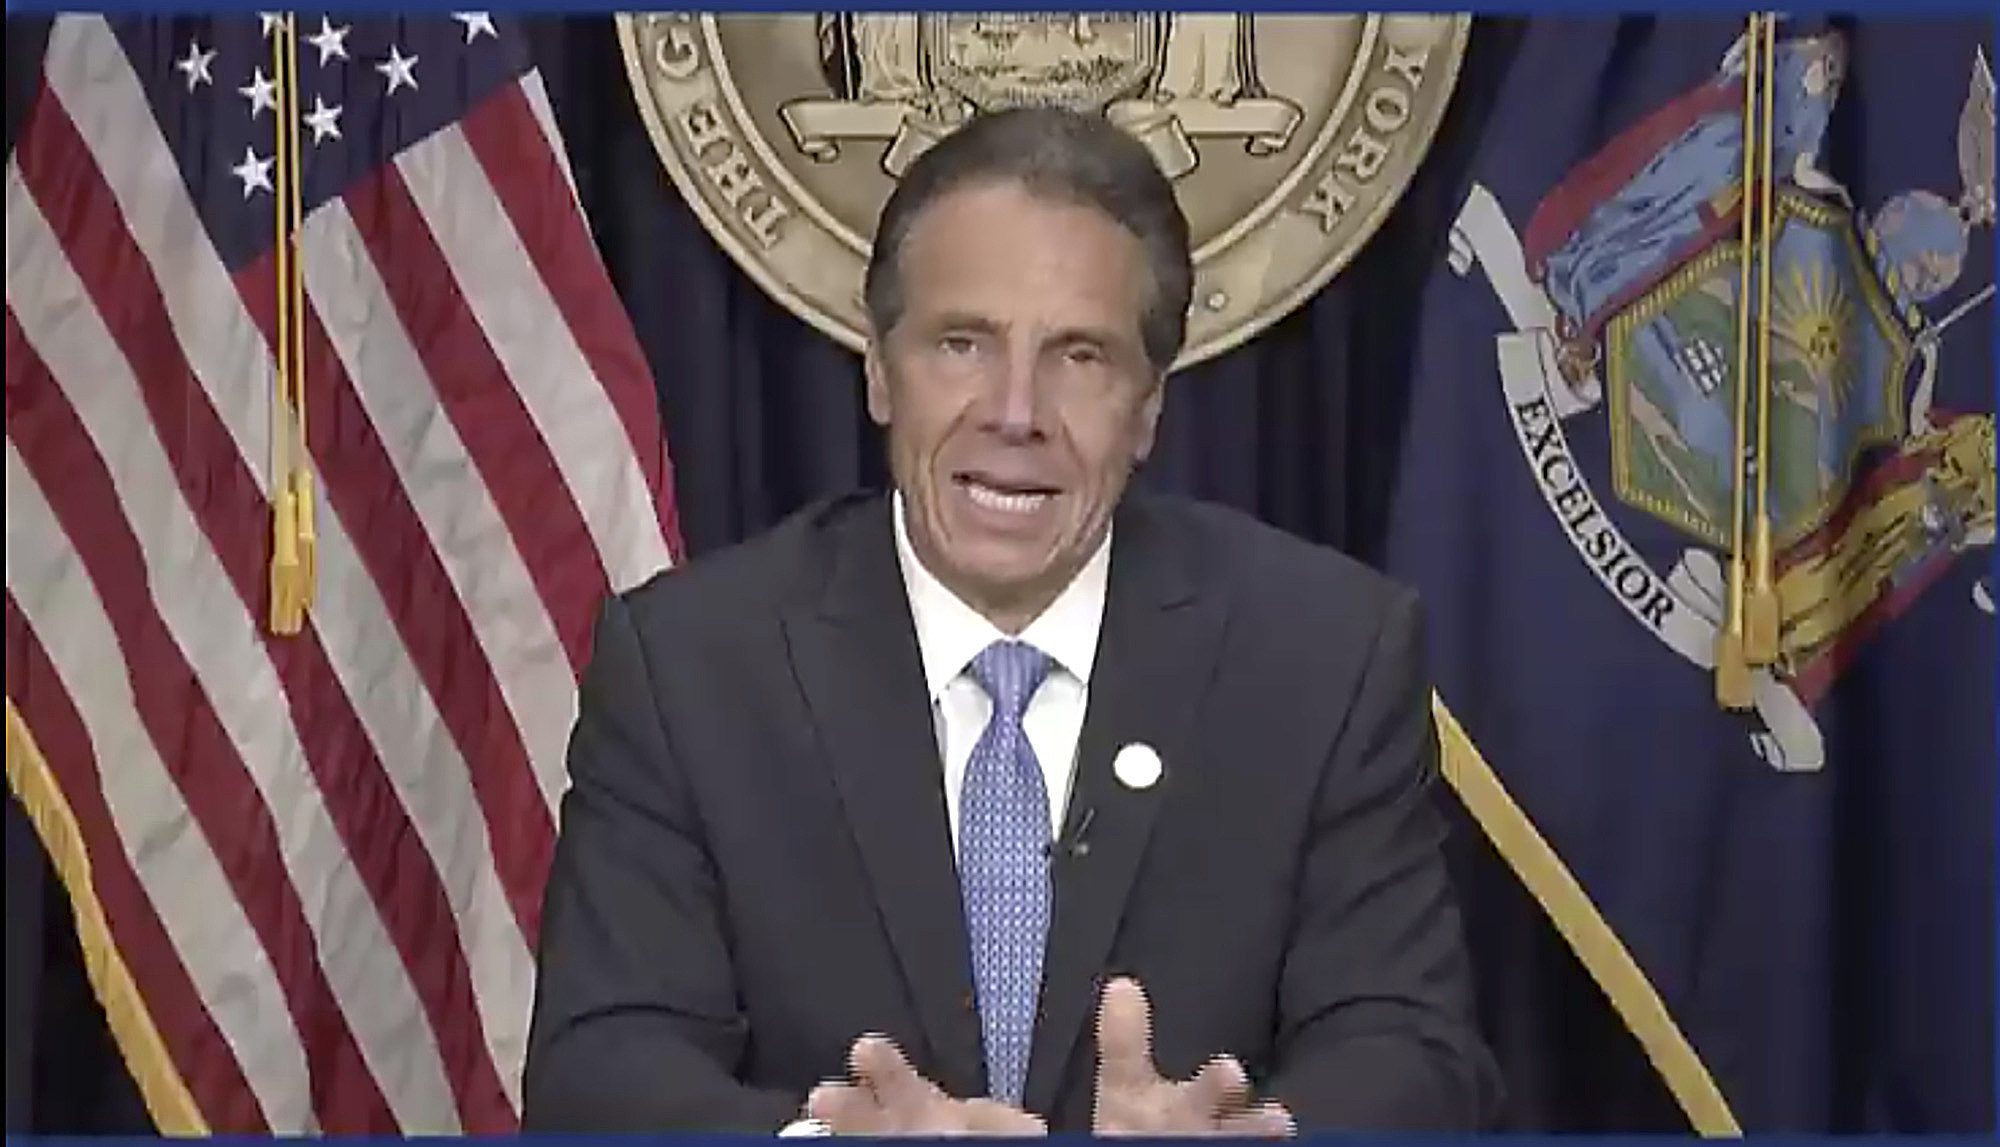 Cuomo resigns as NY governor in wake of sex harassment scandal